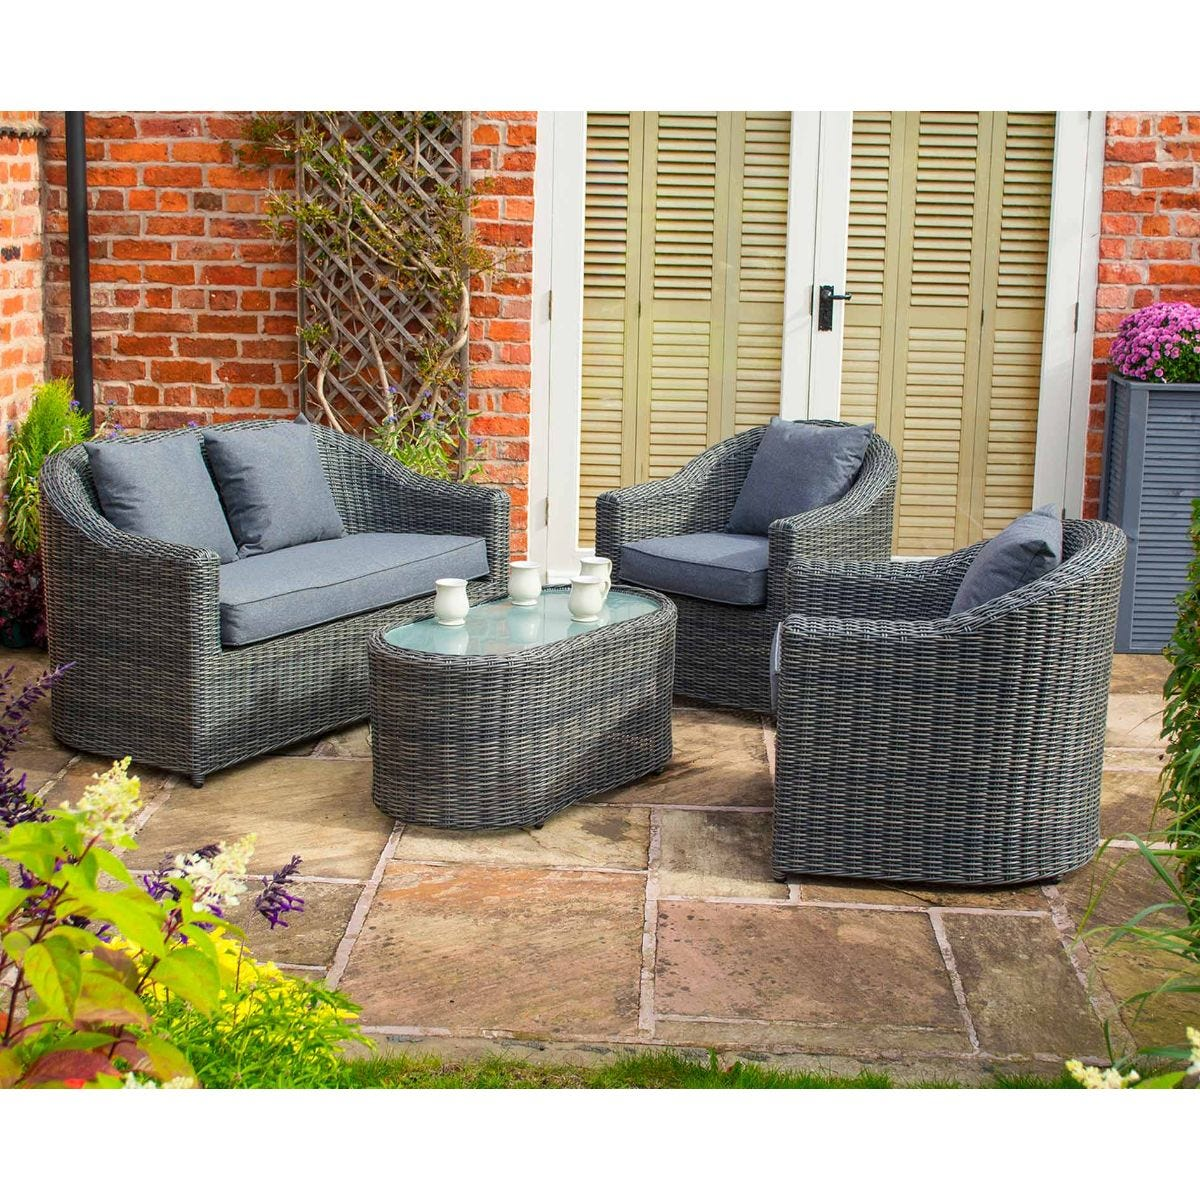 Rowlinson Bunbury Sofa Set, Grey